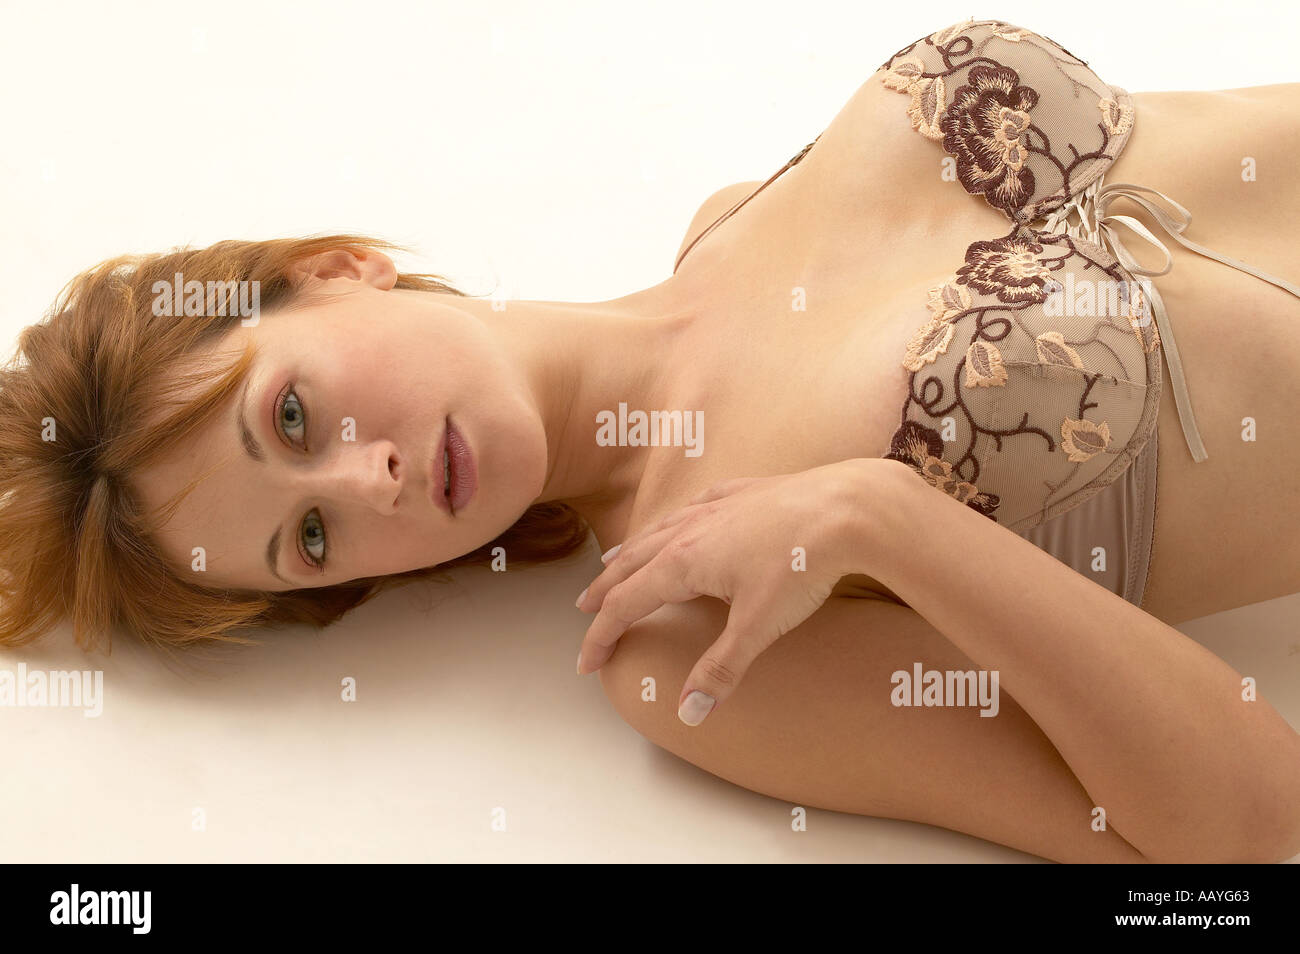 Young model girl woman female with blonde hair wearing skin colour bra sleeping on white background - Stock Image